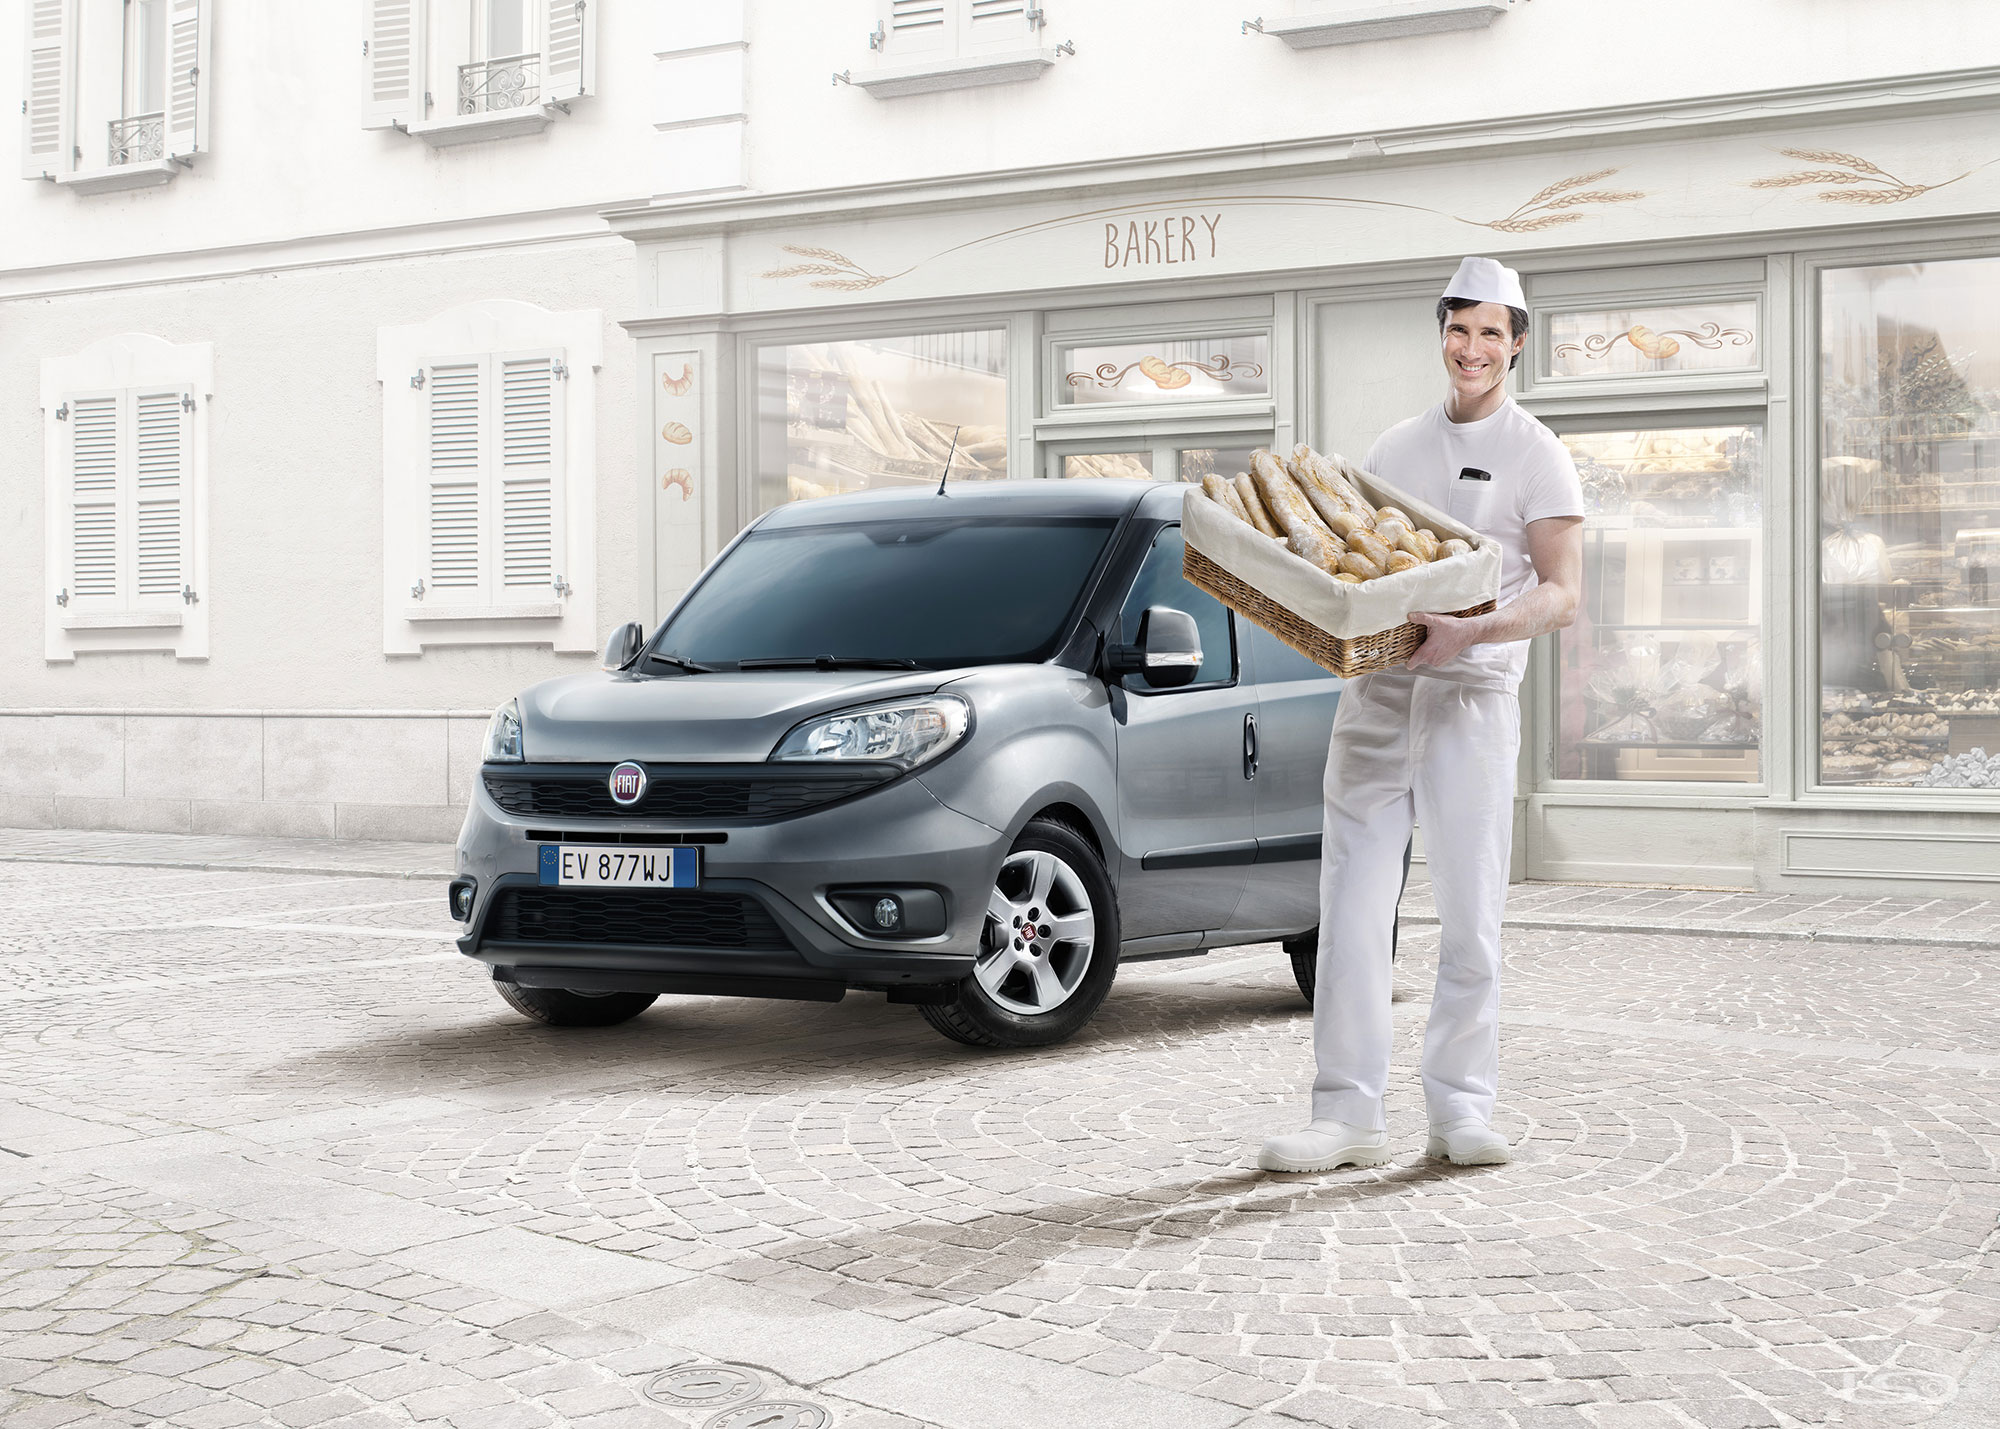 2014-12-12-191-Leo-Burnett-To-Fiat-Doblo-Panettiere-ipad